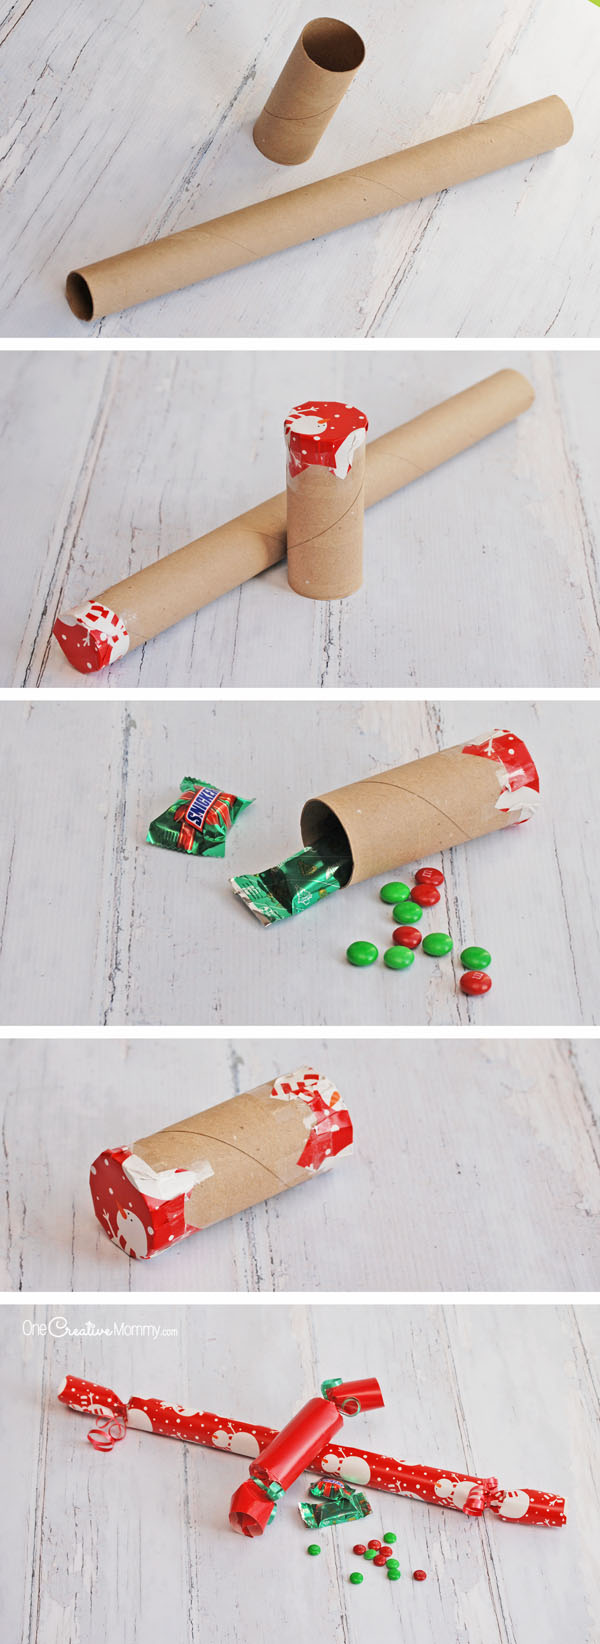 how to make christmas crackers a fun and easy stocking stuffer idea onecreativemommy